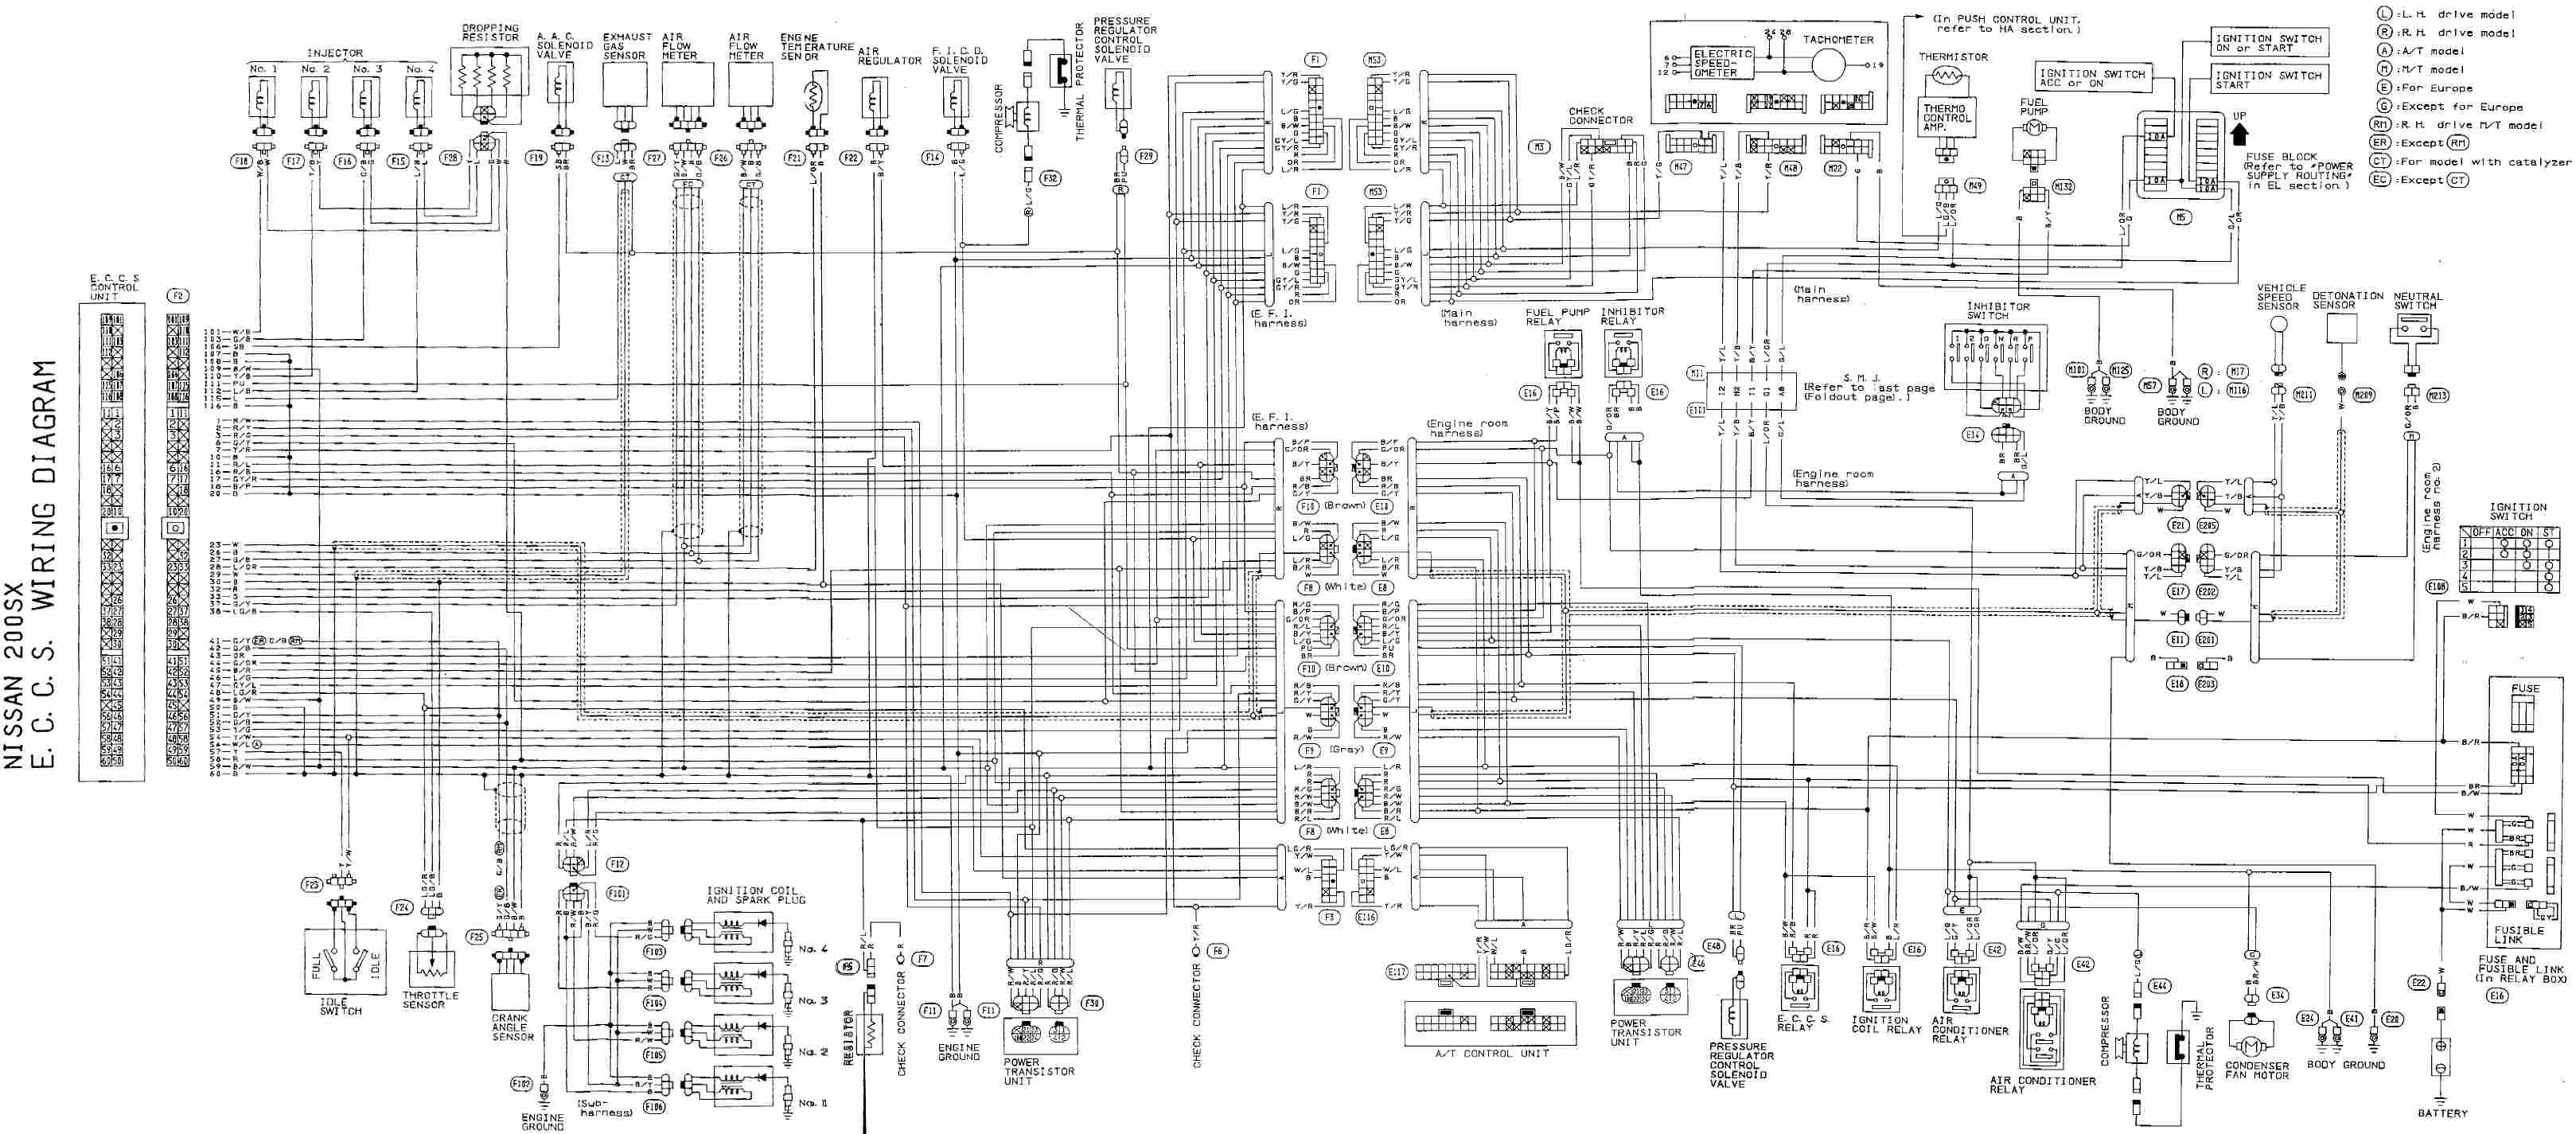 1990 Z32 Engine Harness Diagram Nissan Wiring Diagram Color Codes 2006 Honda Civic Stereo Of 1990 Z32 Engine Harness Diagram